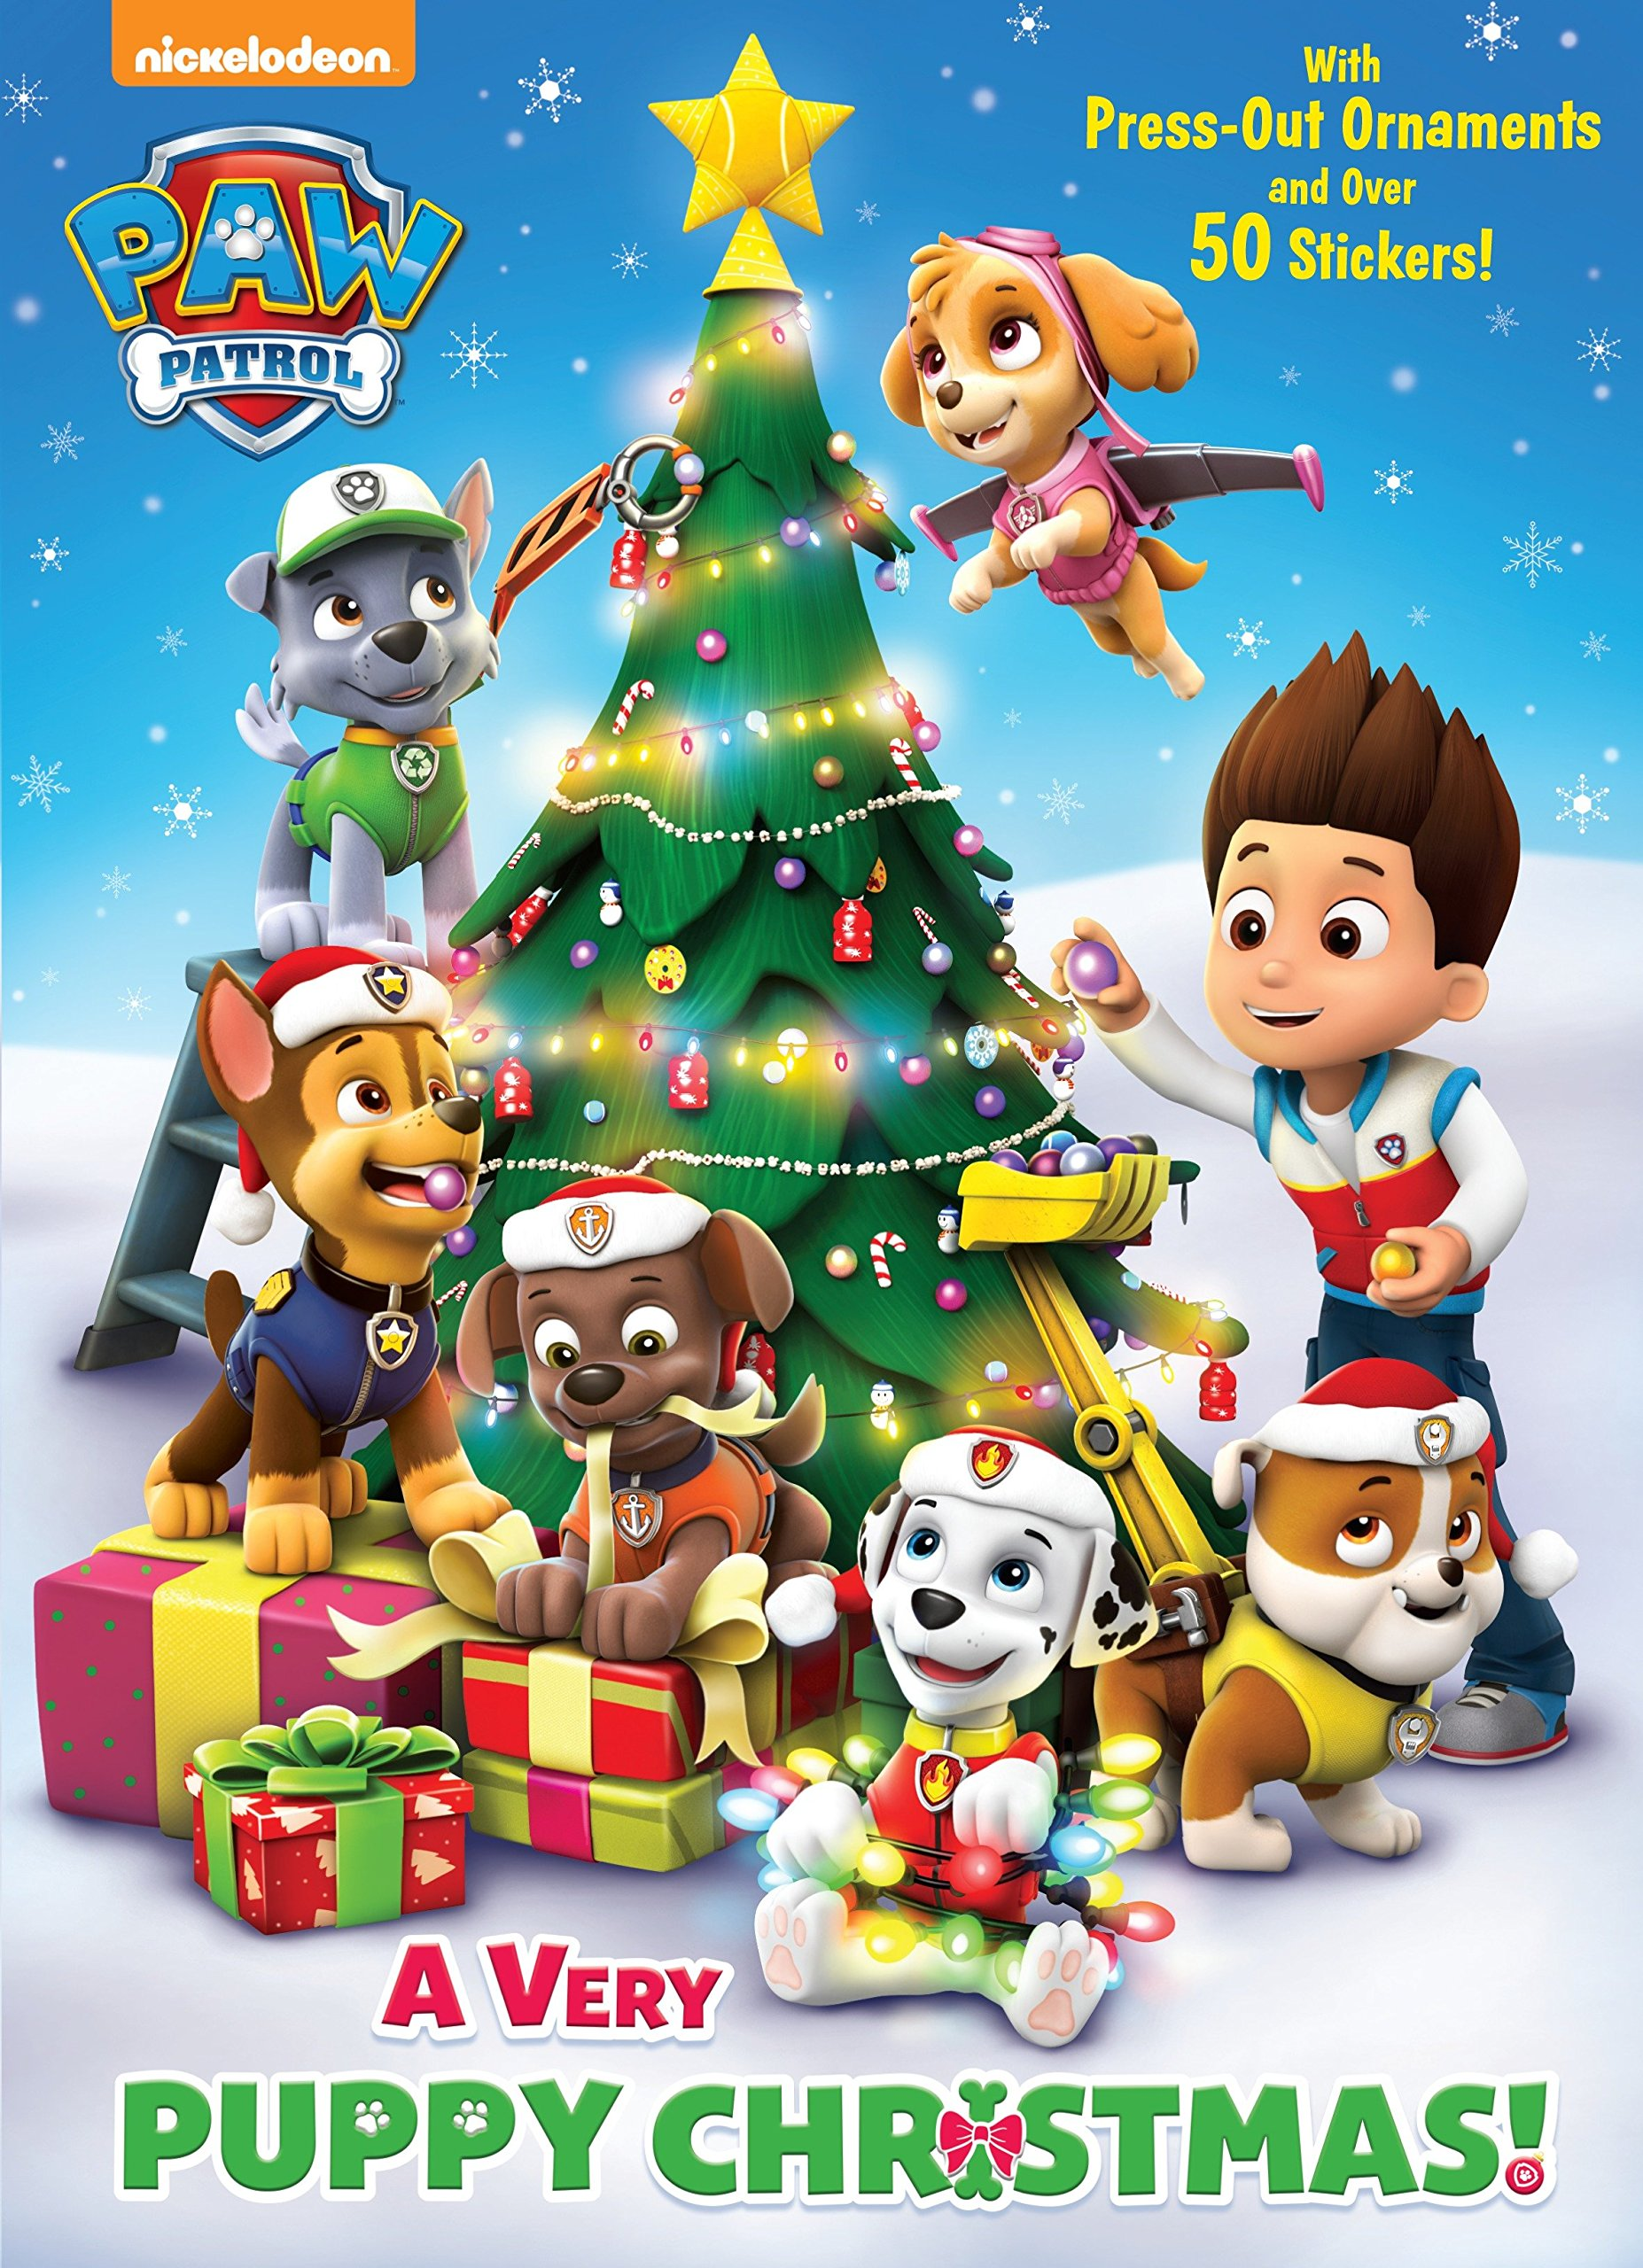 A Very Puppy Christmas Paw Patrol Color Plus Cardstock And Stickers Amazon Co Uk Golden Books 9780399553561 Books